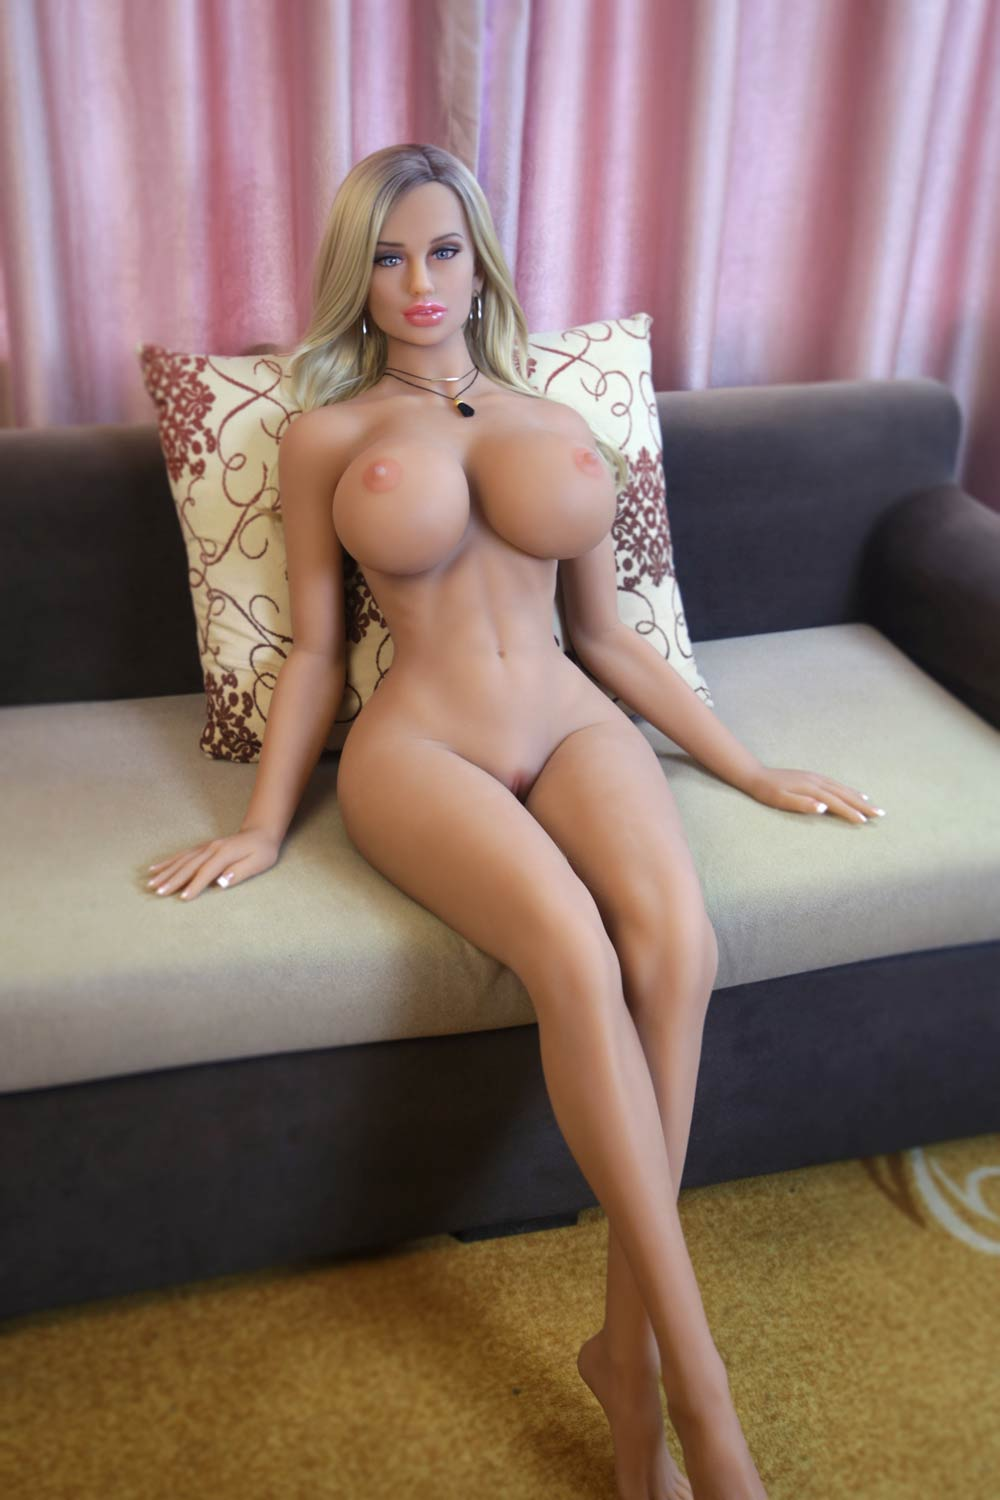 Big breasted sex doll sitting naked on the sofa